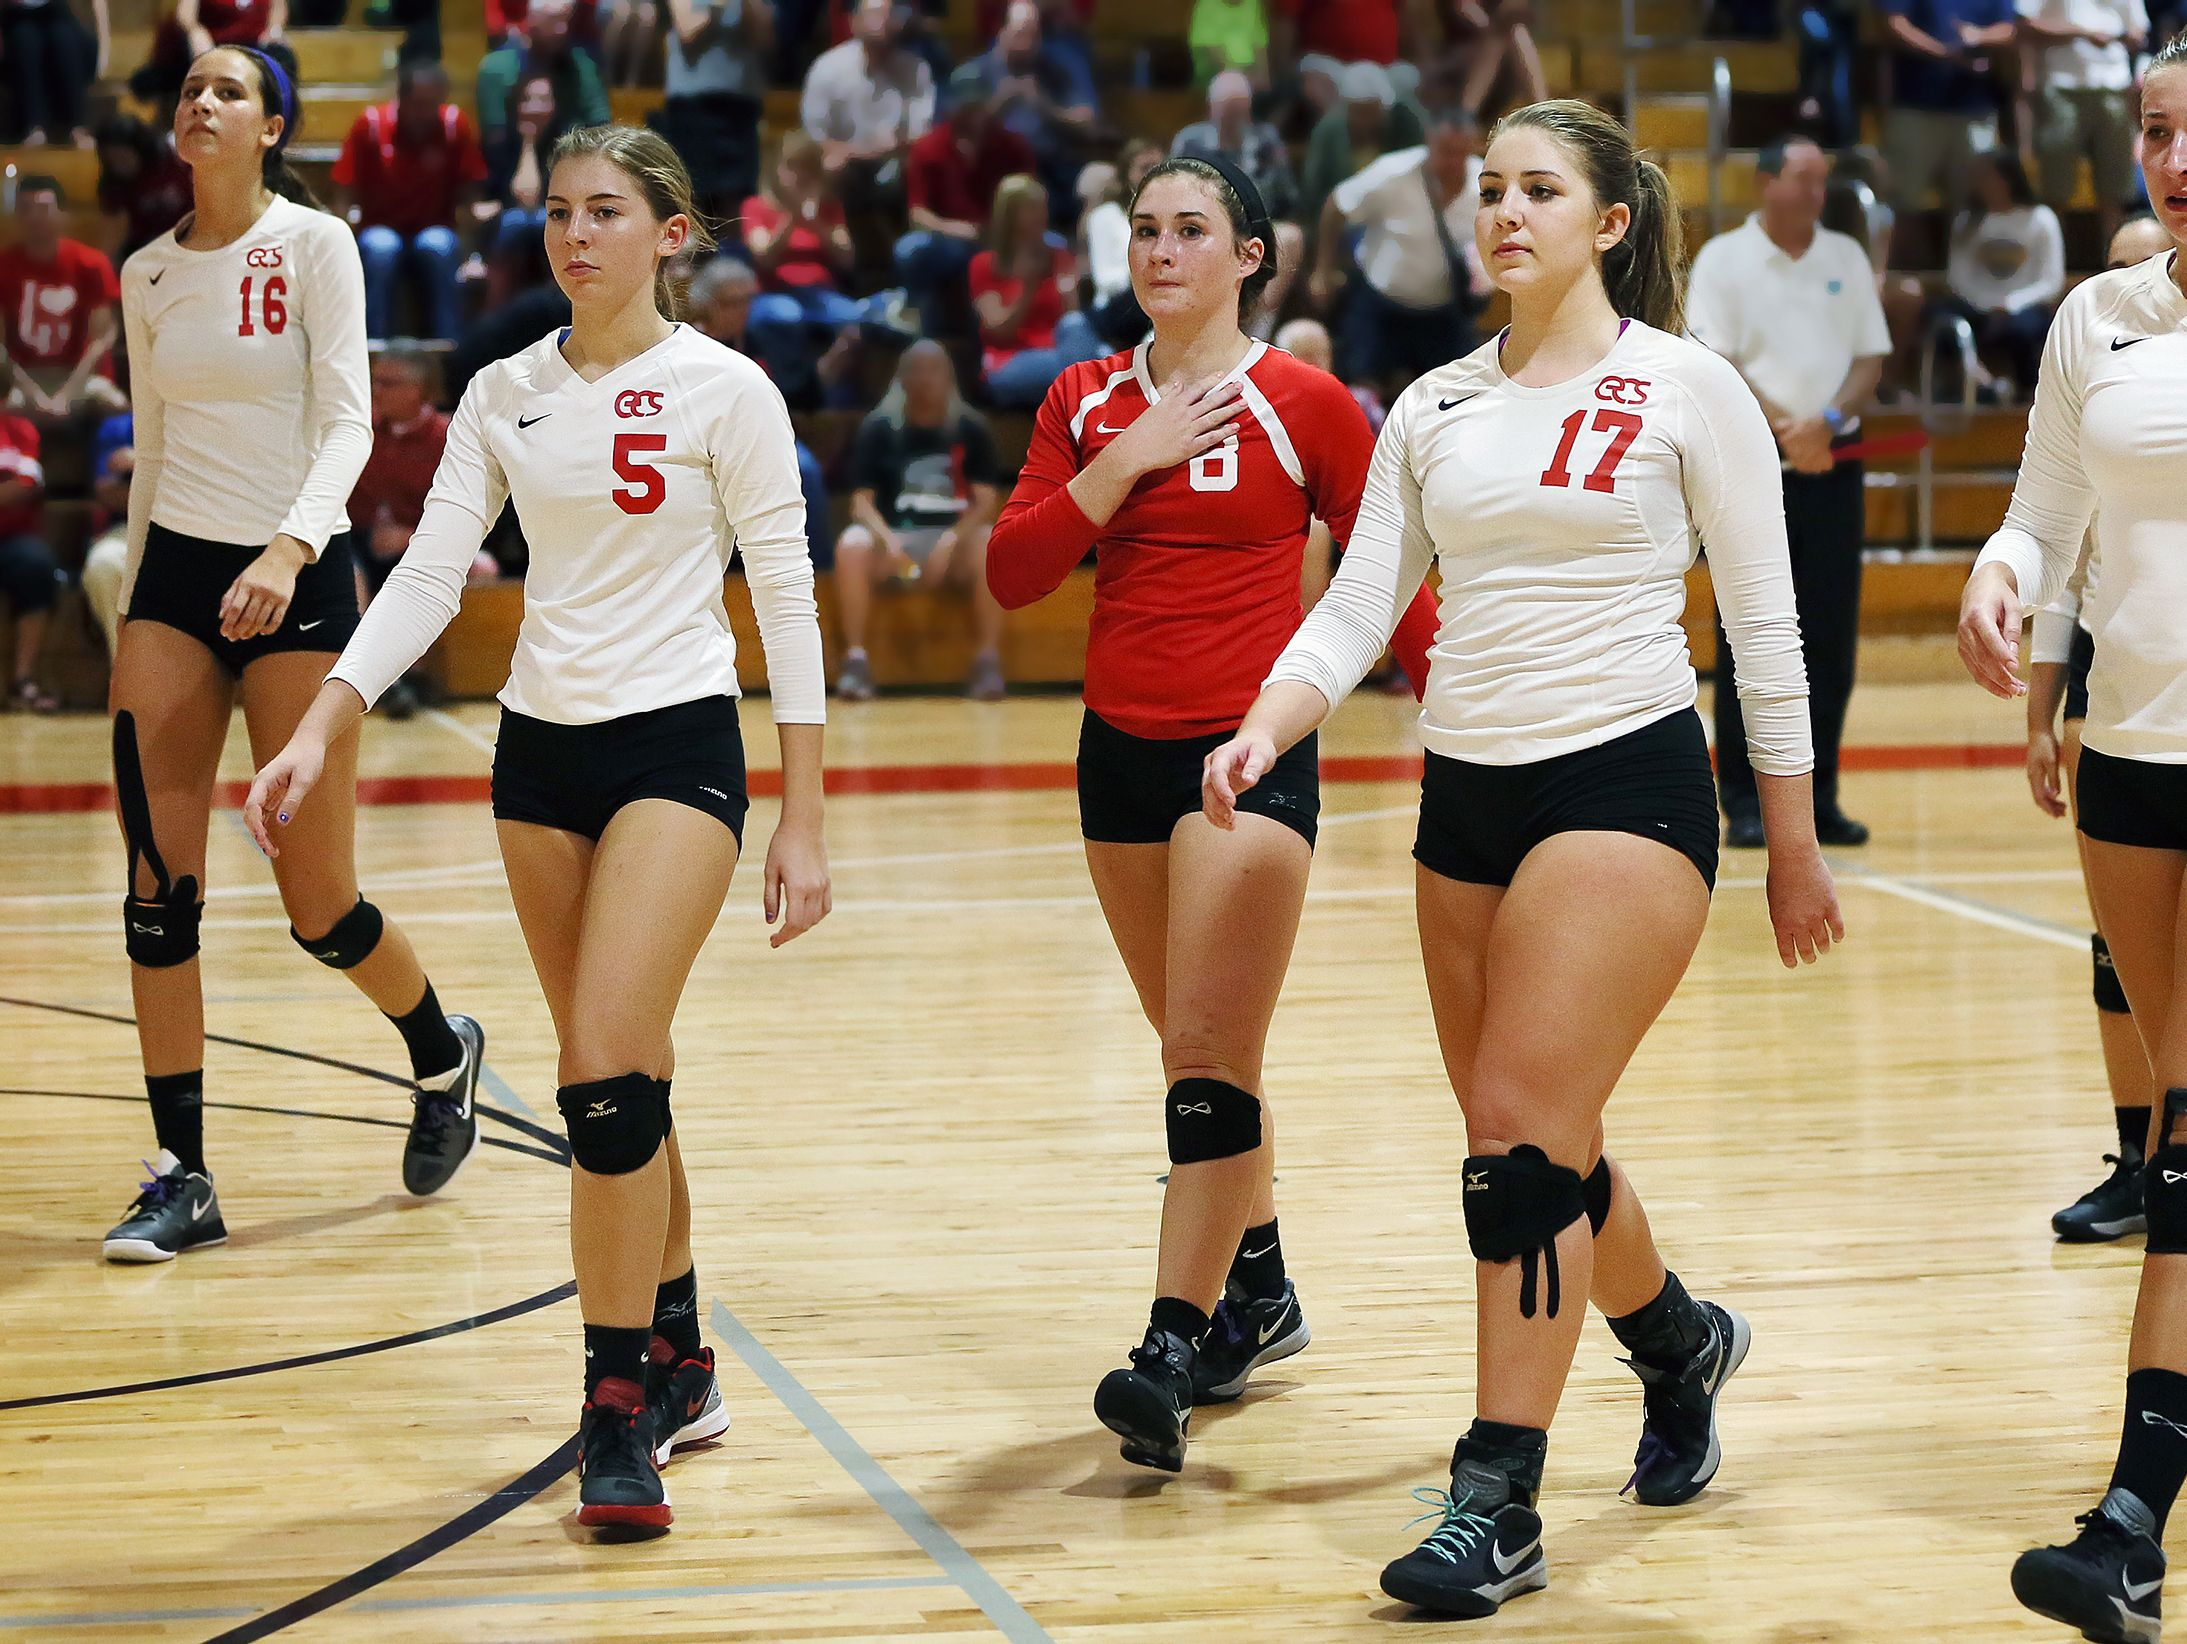 Evangelical Christian School players leave the court after losing 3-0 to Seacrest Country Day School on Thursday in the district 3A-6 volleyball final at ECS in south Fort Myers.